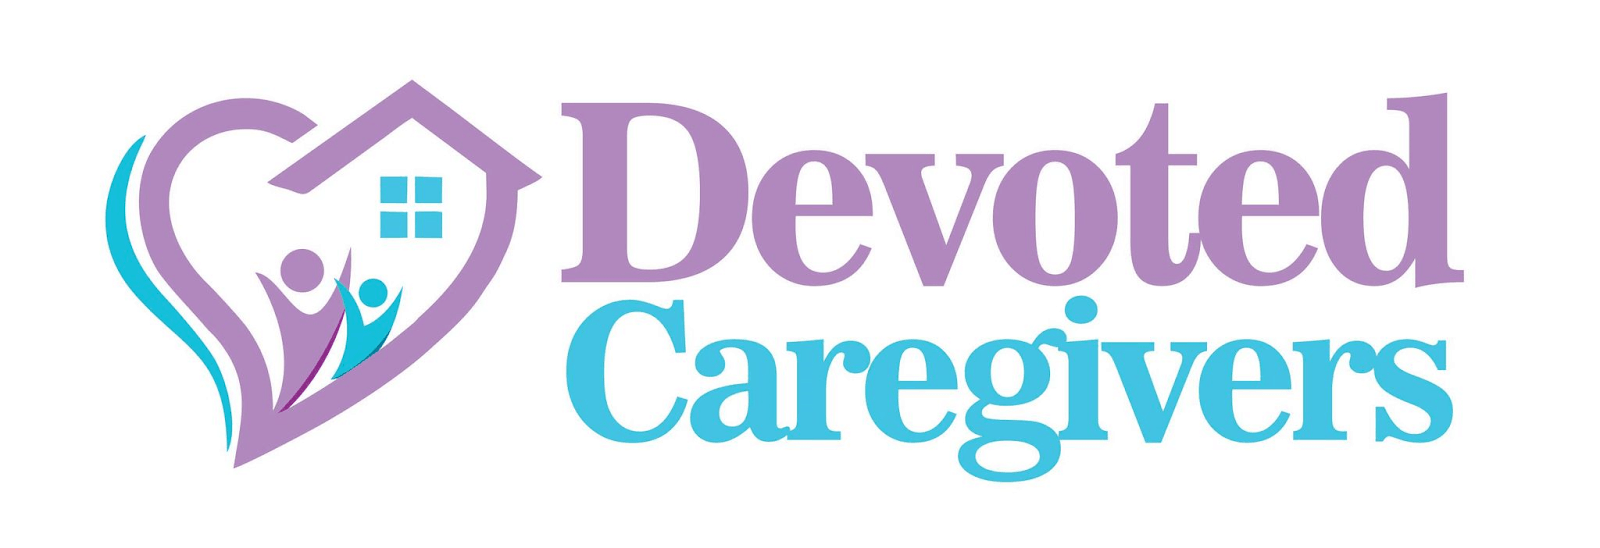 Devoted Caregivers San Diego Offers Home Care and Other Services for Seniors in San Diego